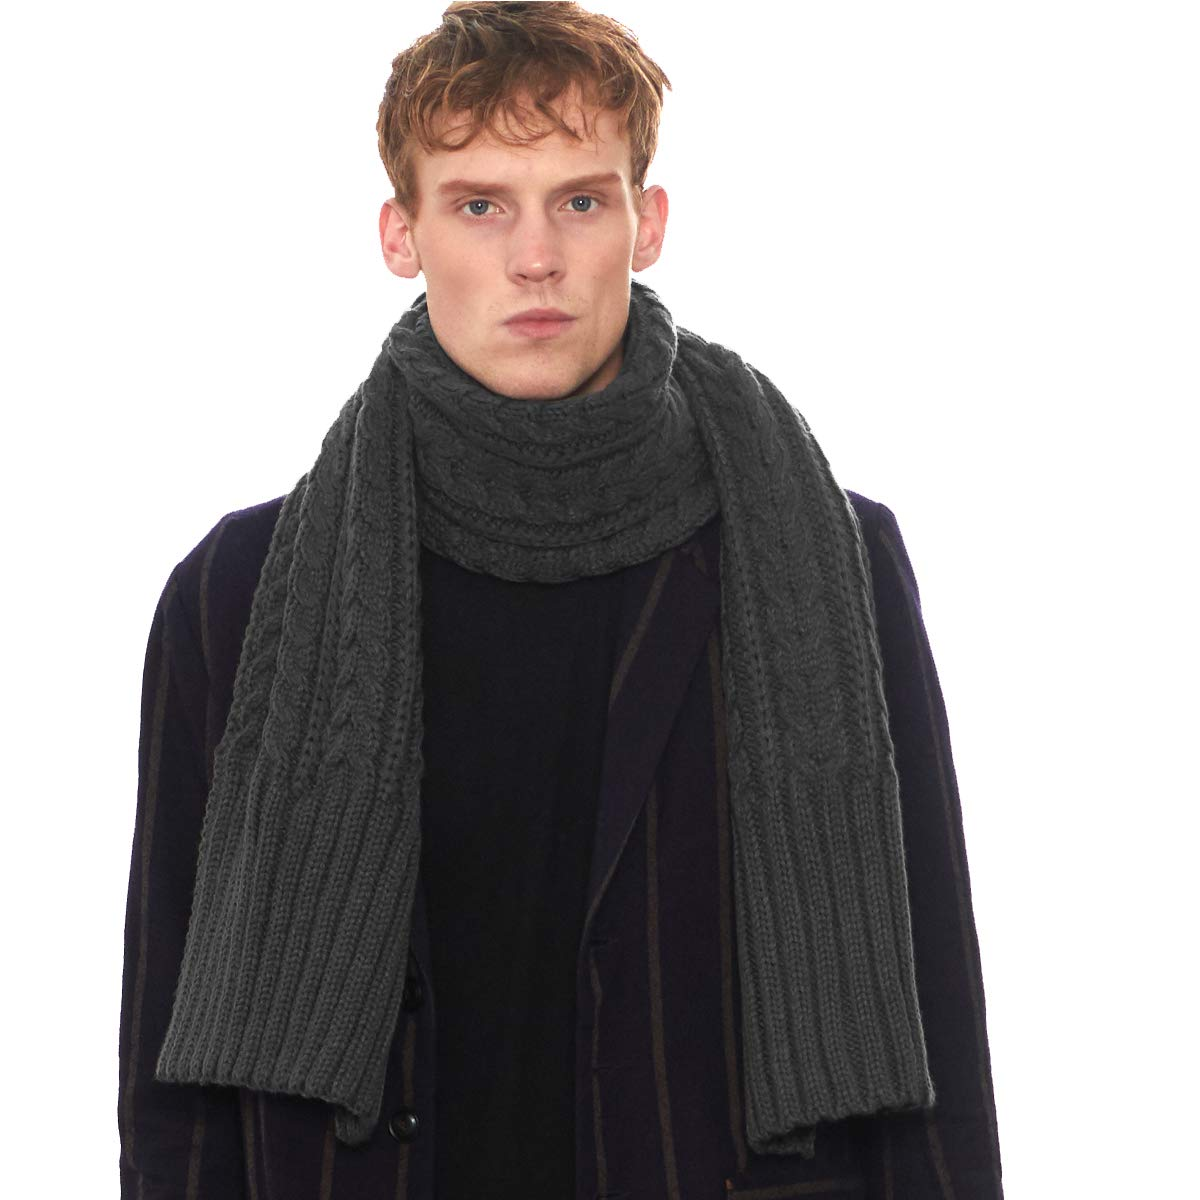 CACUSS Scarf for Men Winter Knit Solid Color Warm Thick Scarf Students Long Trend Casual Infinity Scarf Knitting Trend Scarf Size 70.74×12.58 Inches (Dark gray) by CACUSS (Image #2)